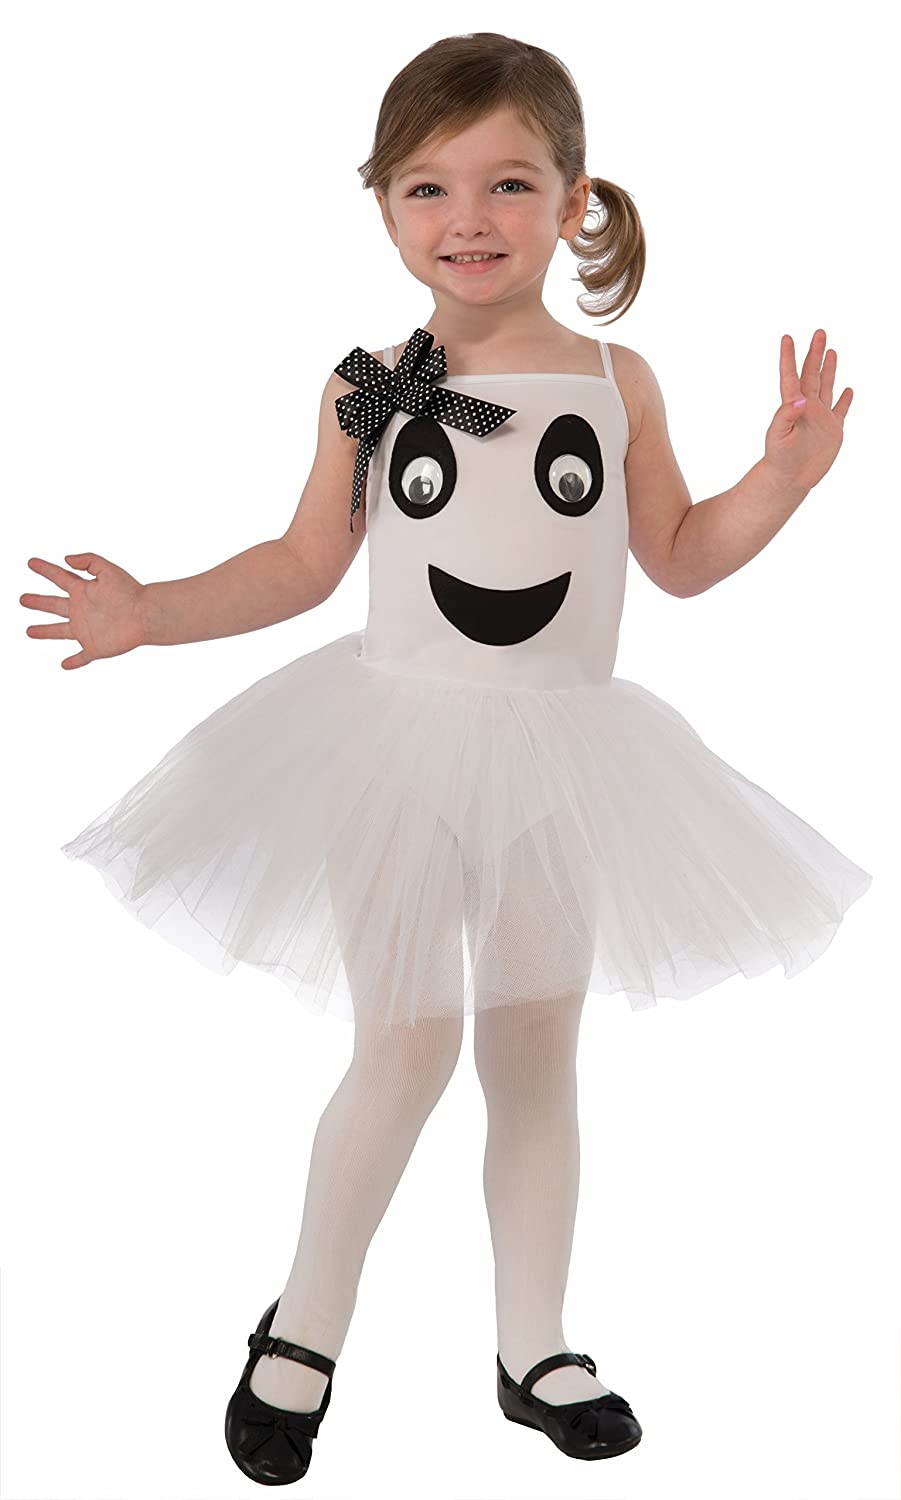 Amazon.com Forum Novelties Toddler Boo-Tiful Ballerina Costume Toys u0026 Games  sc 1 st  Amazon.com & Amazon.com: Forum Novelties Toddler Boo-Tiful Ballerina Costume ...